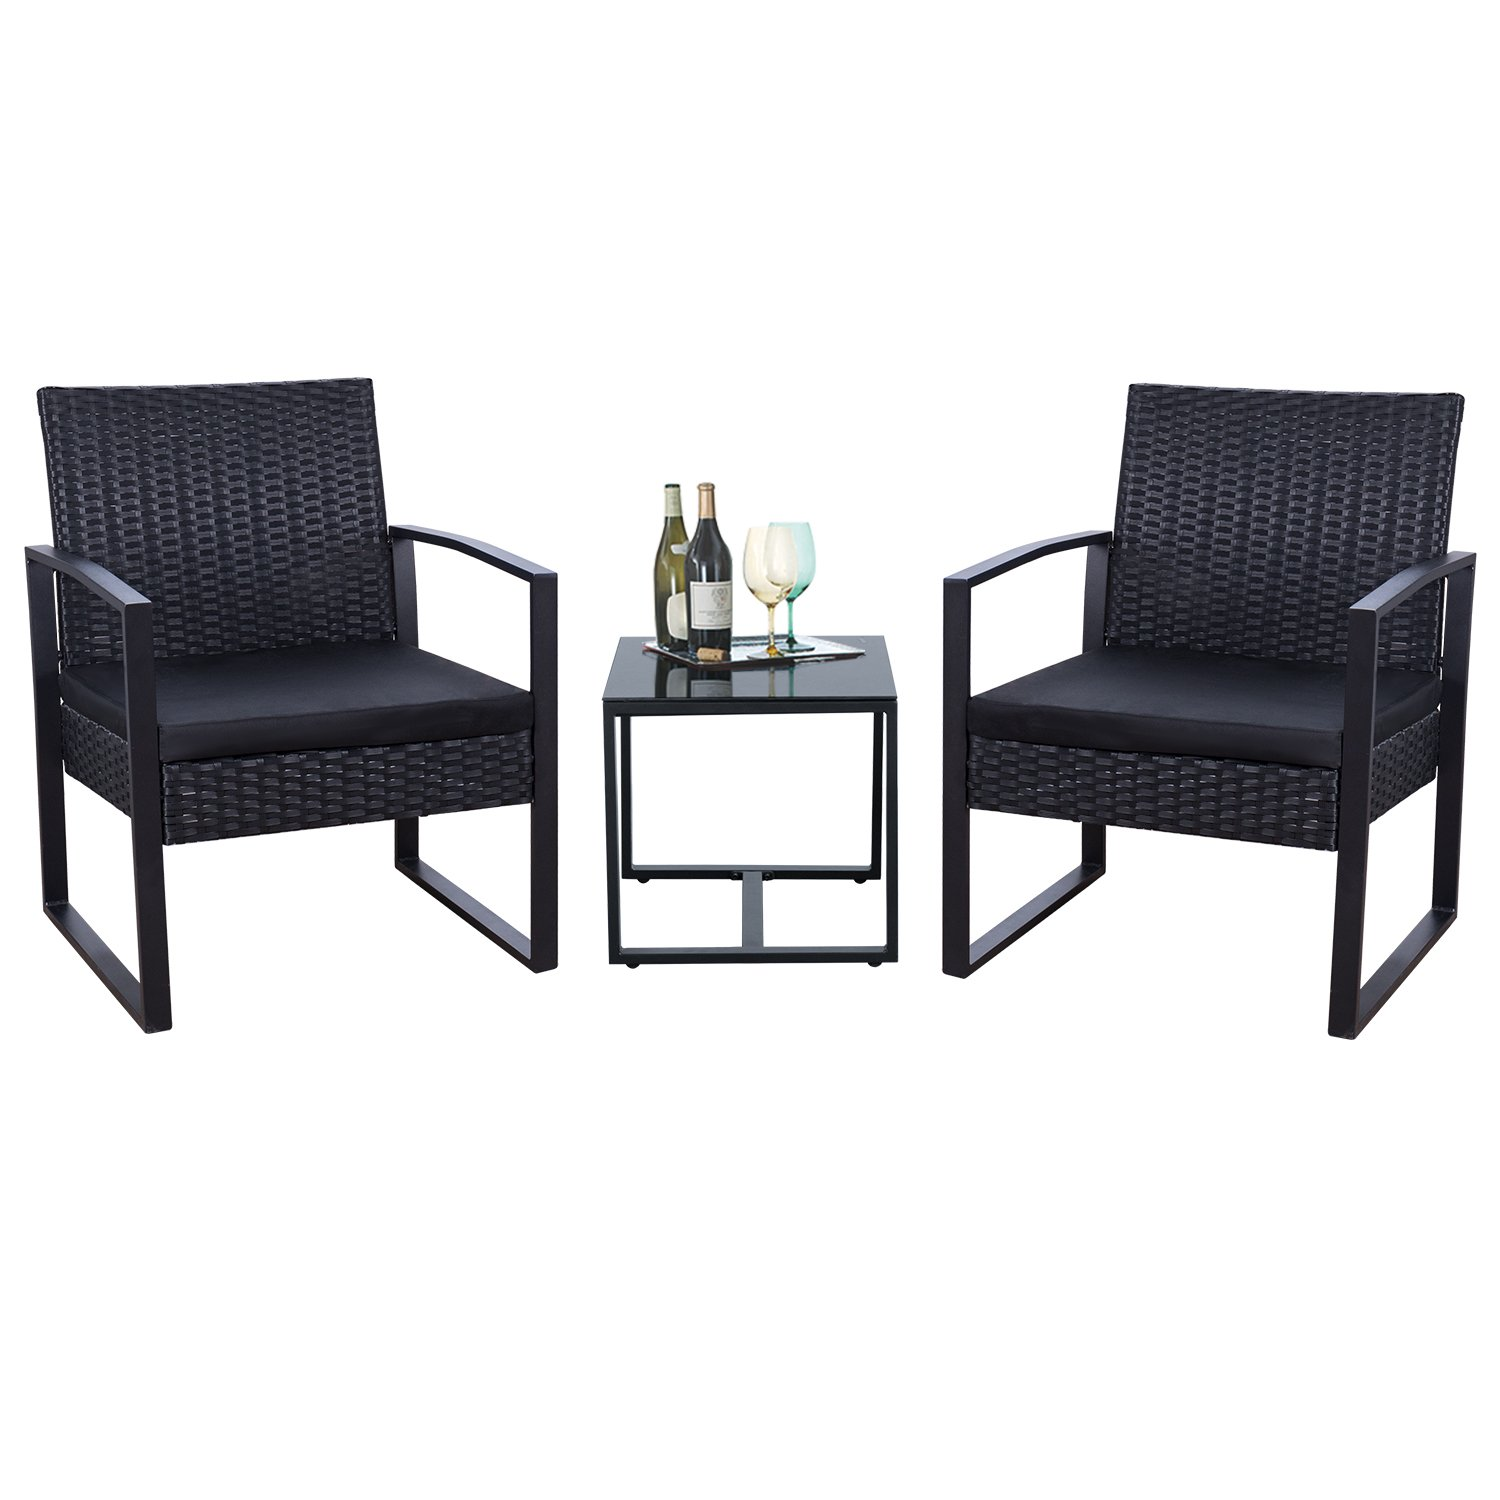 Flamaker 3 Pieces Patio Furniture Set Bistro Table Set Modern Outdoor Furniture Sets Clearance Cushioned PE Wicker Bistro Set Rattan Chair Conversation Sets with Coffee Table (Black)